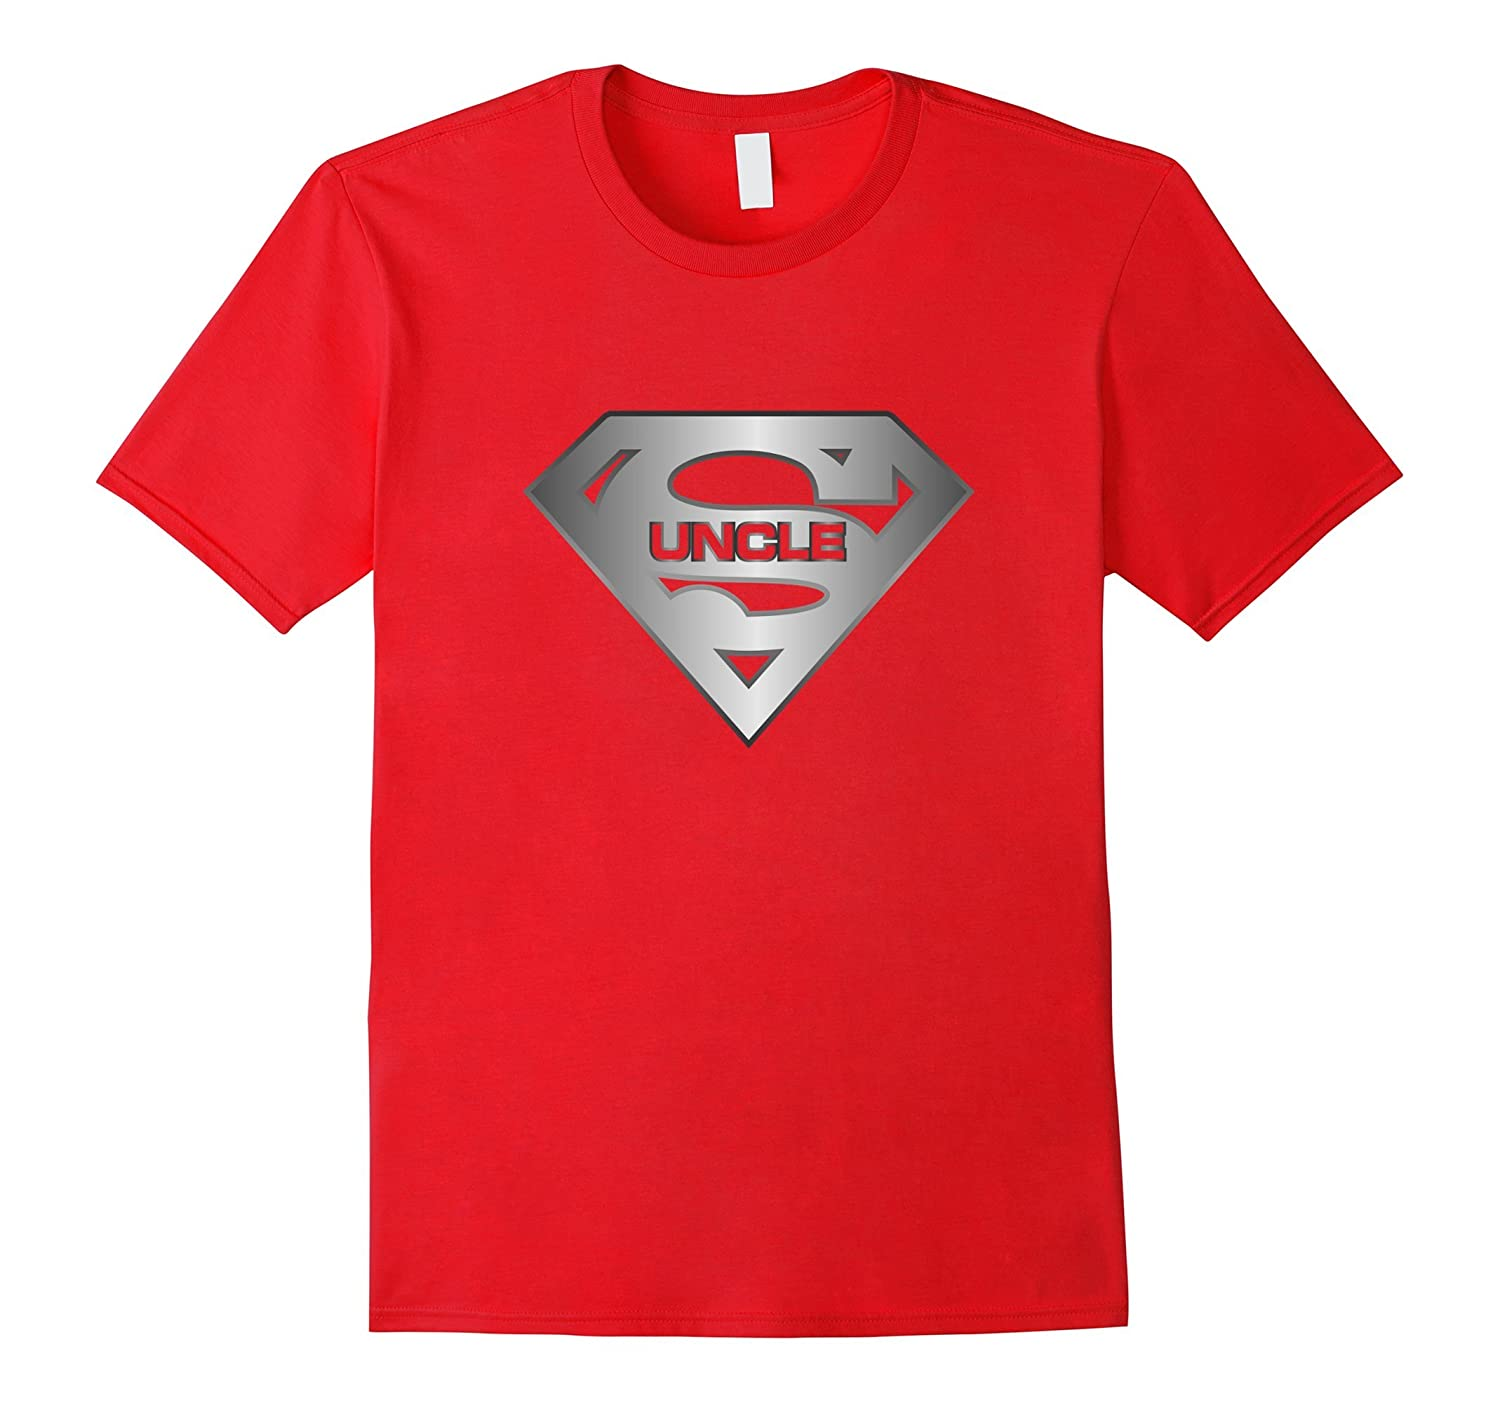 Mens Super Uncle T-Shirt is the Best Tee Shirt From Niece Nephew-TD